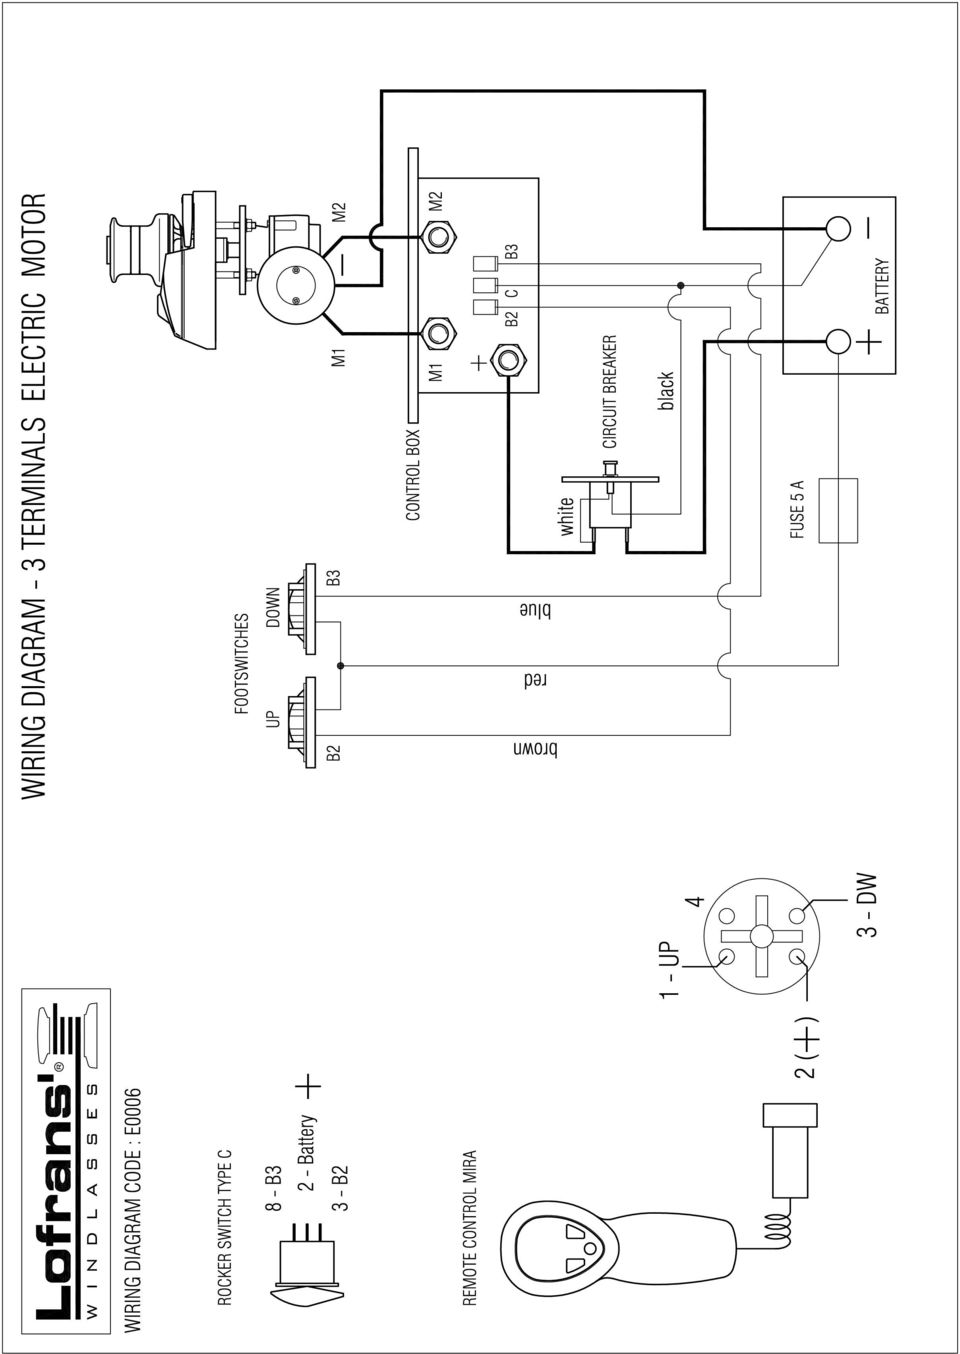 Titan Instruction Manual Manuale Di Istruzioni Manuel Dinstructions Circuit Diagram Electronic Canary Also Iso Din Connector Wiring 6